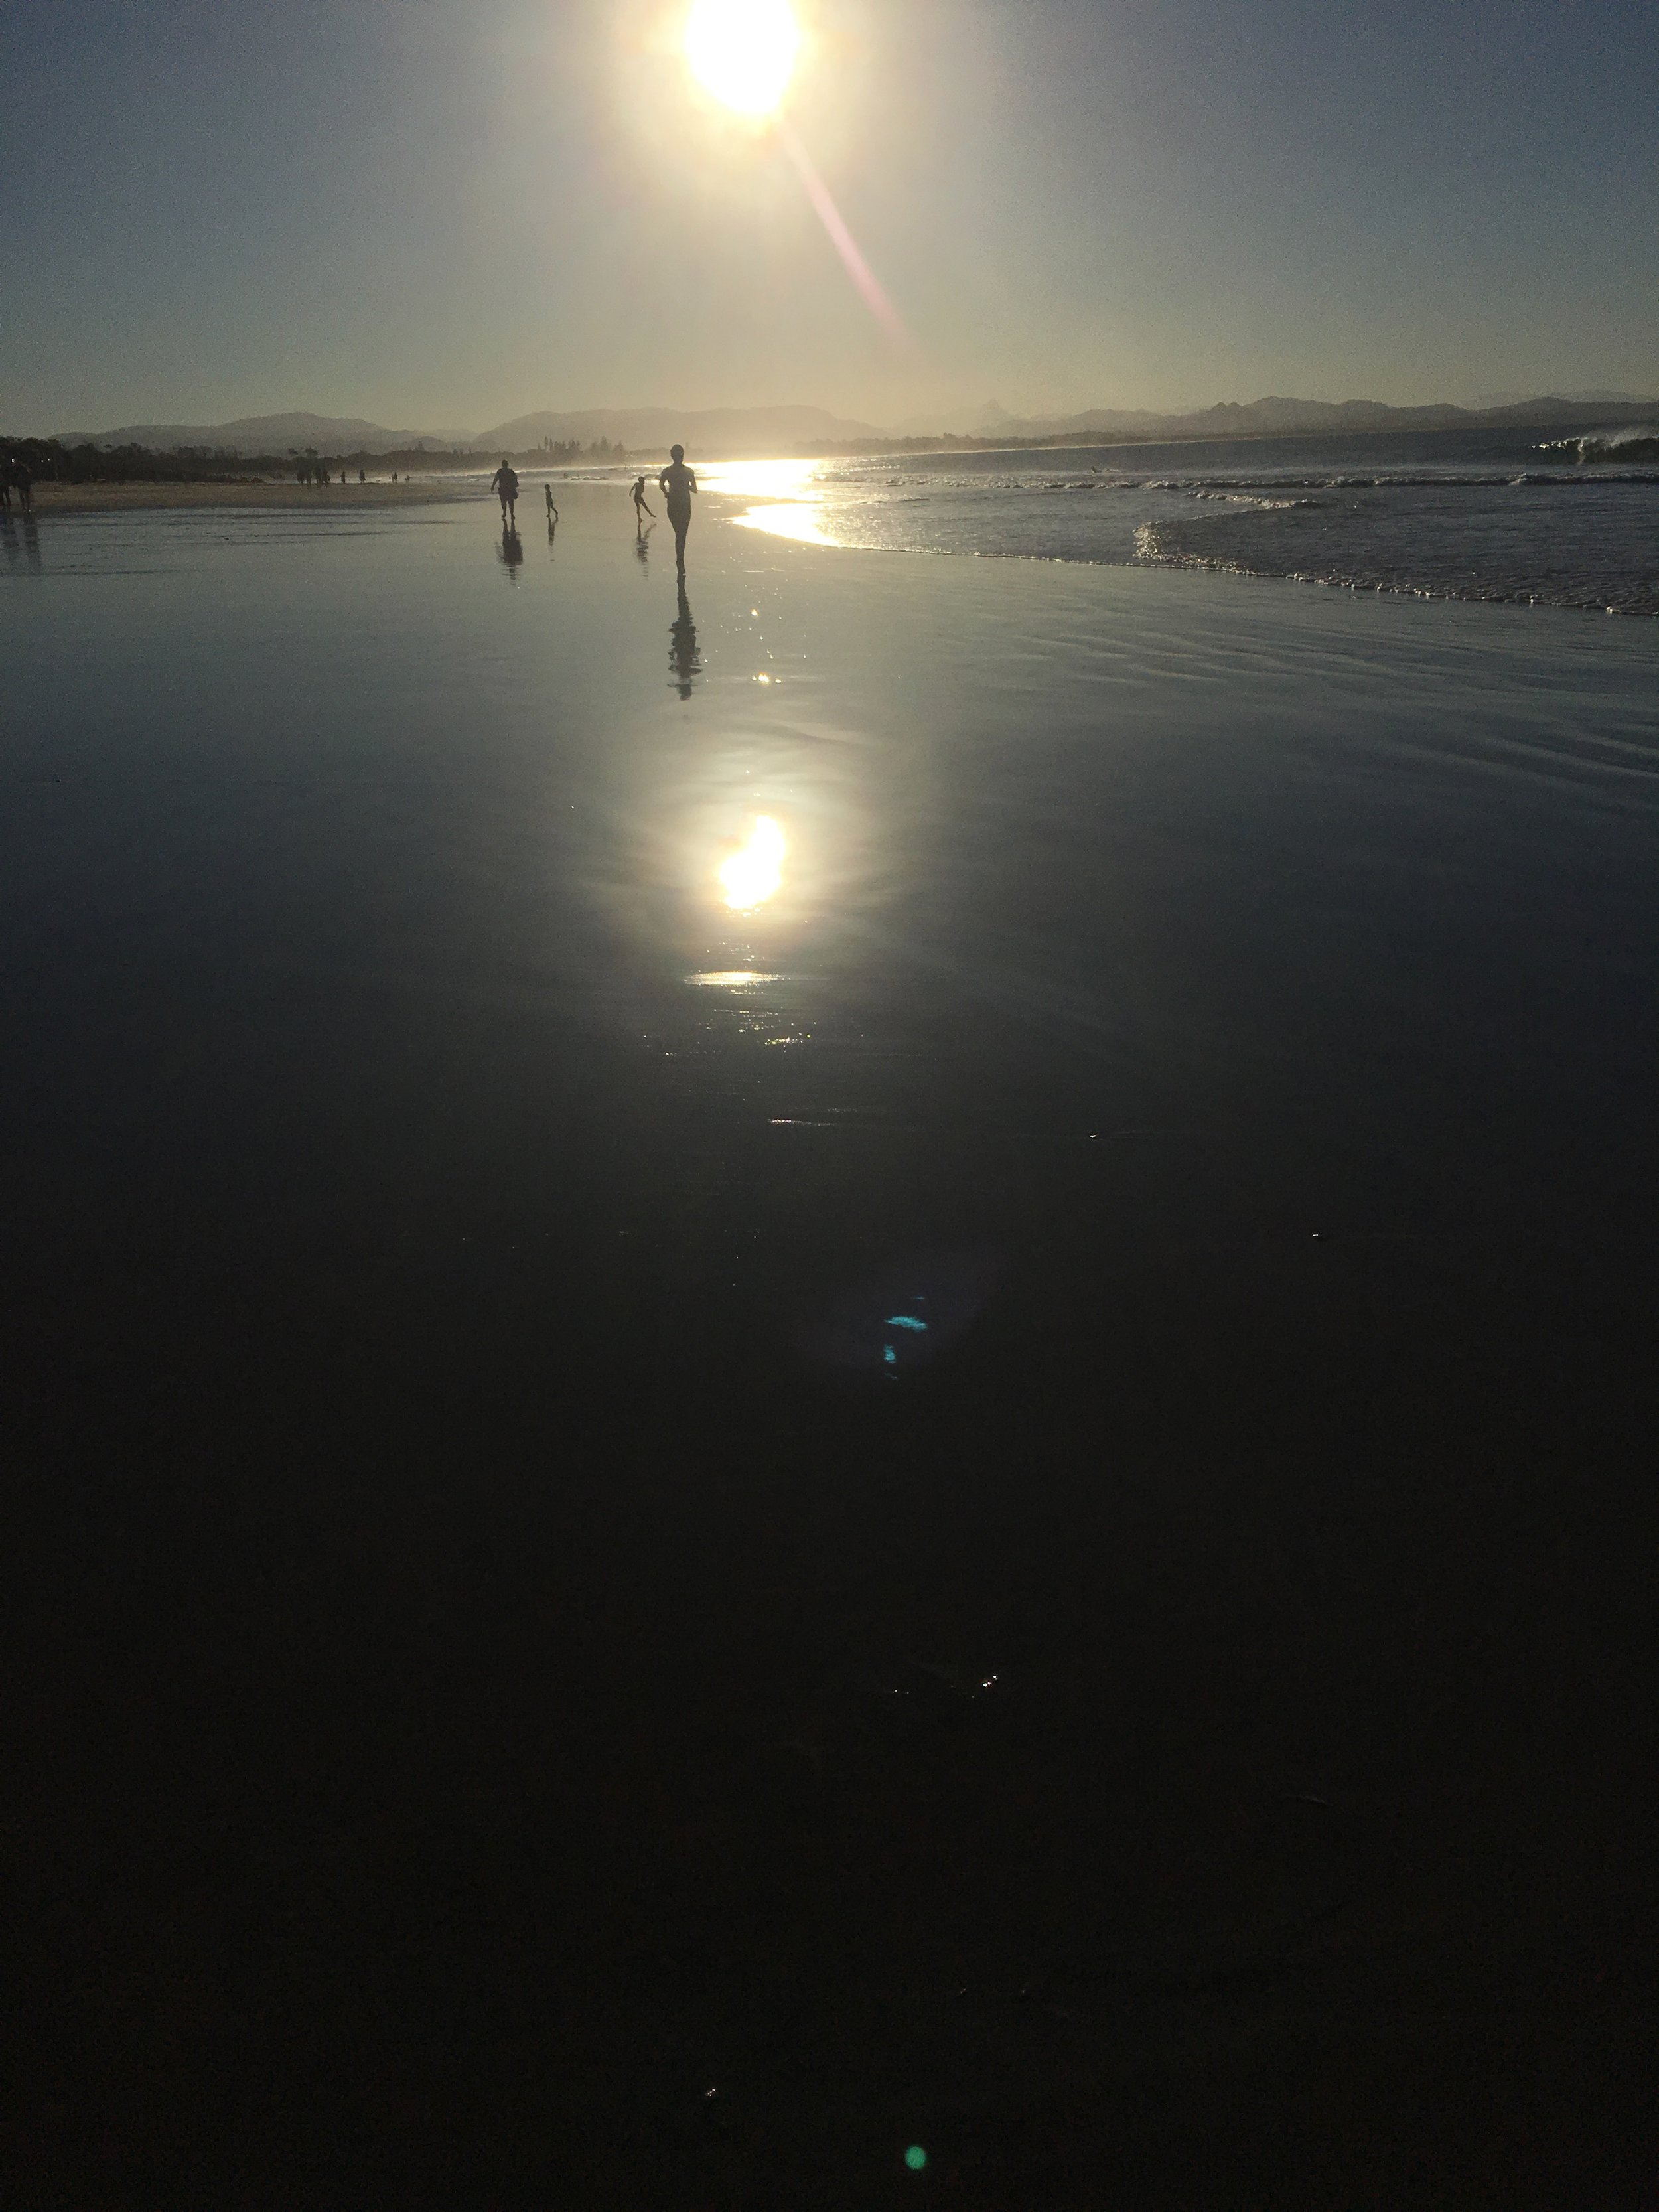 Saturday afternoon and some time off - got to visit Byron Bay, New South Wales - crazy to think this is winter